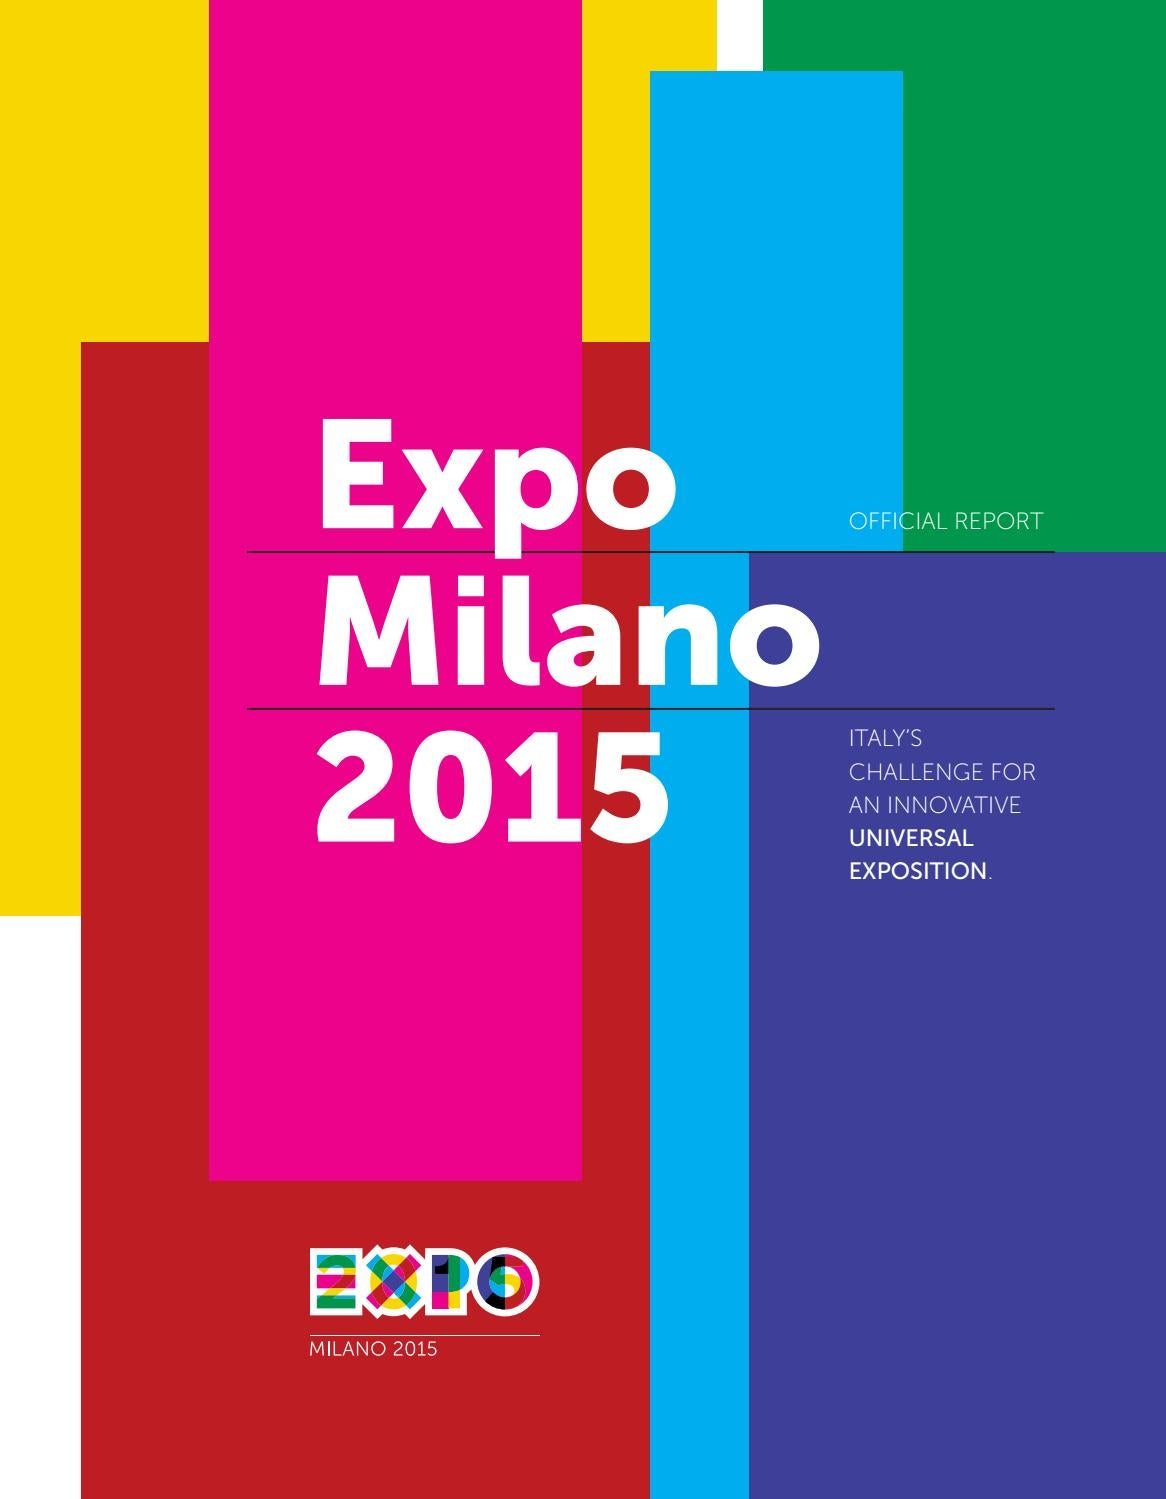 Expo Milano 2015 – Official Report by Expo Milano 2015 - issuu